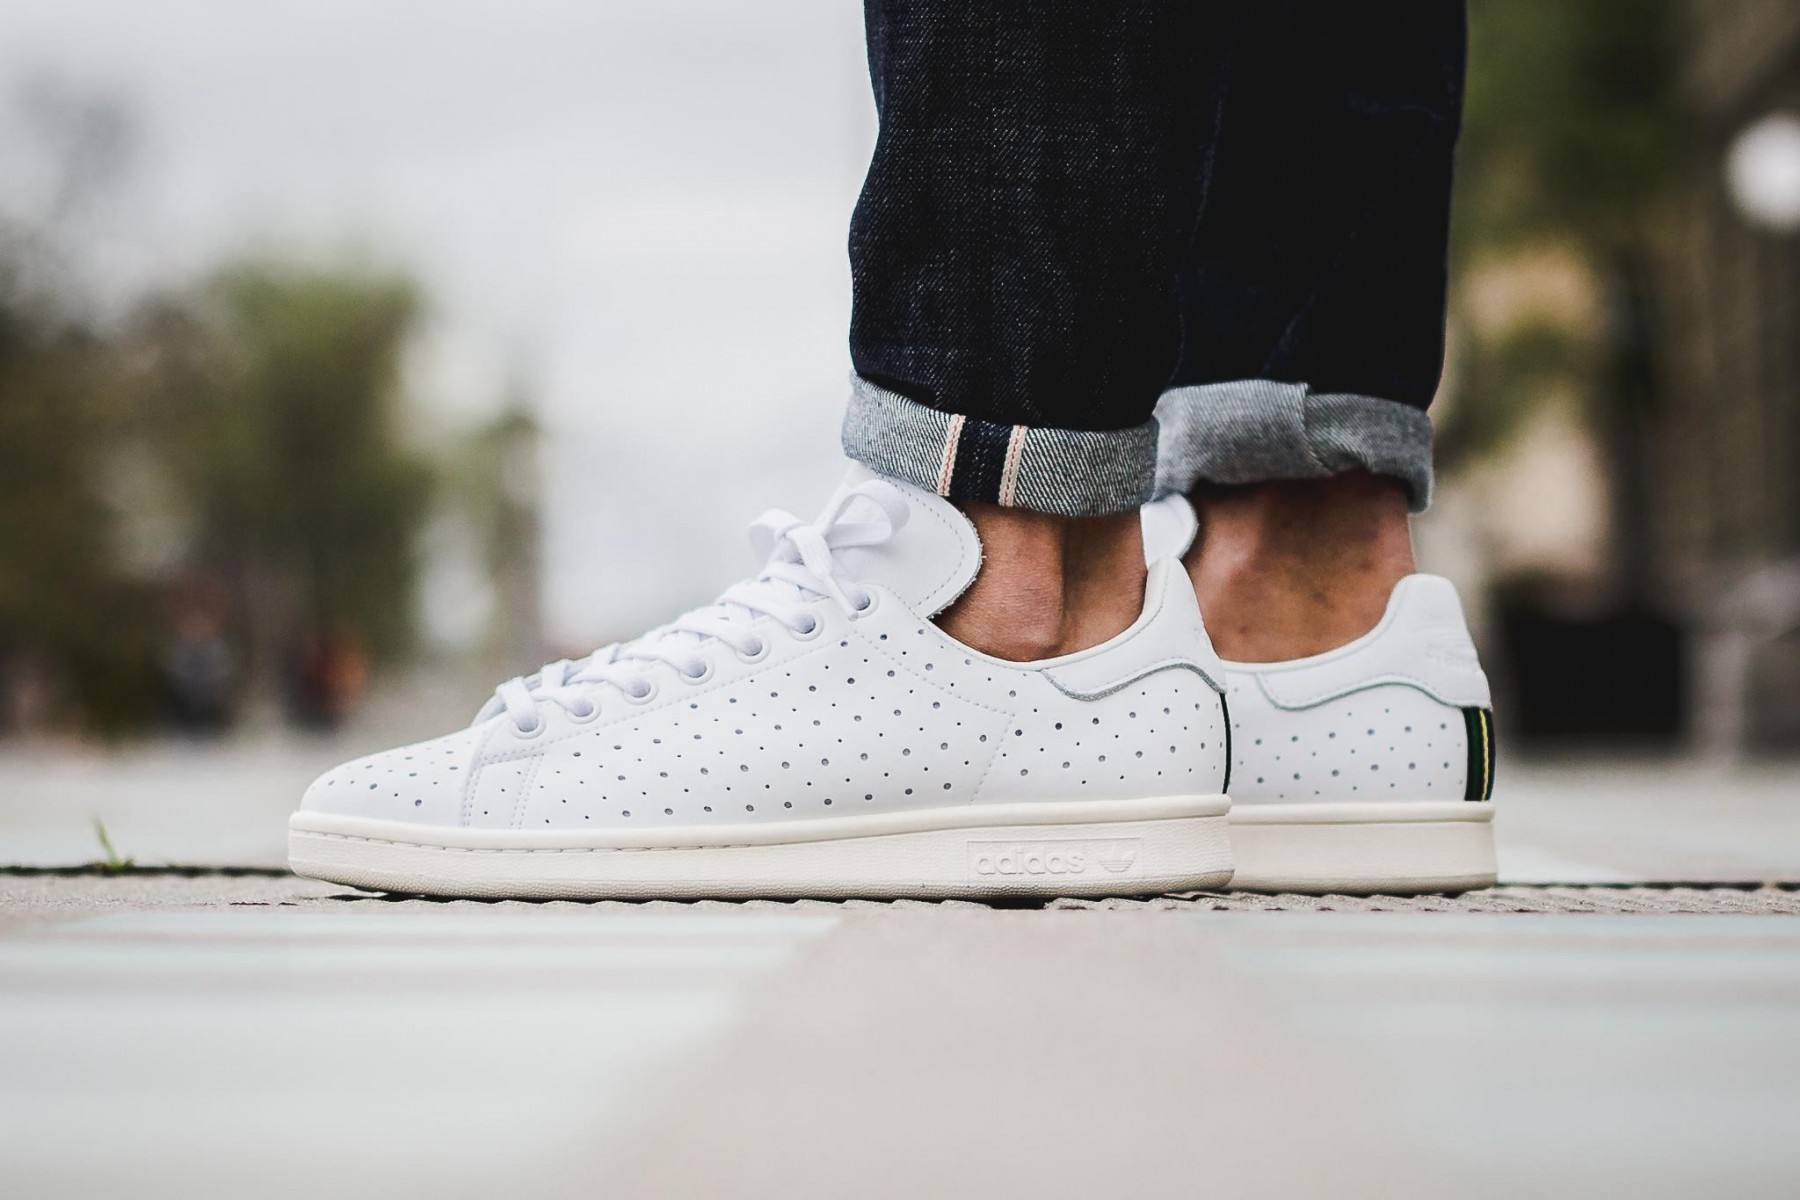 adidas-originals-perforated-stan-smith-2-1800x1200